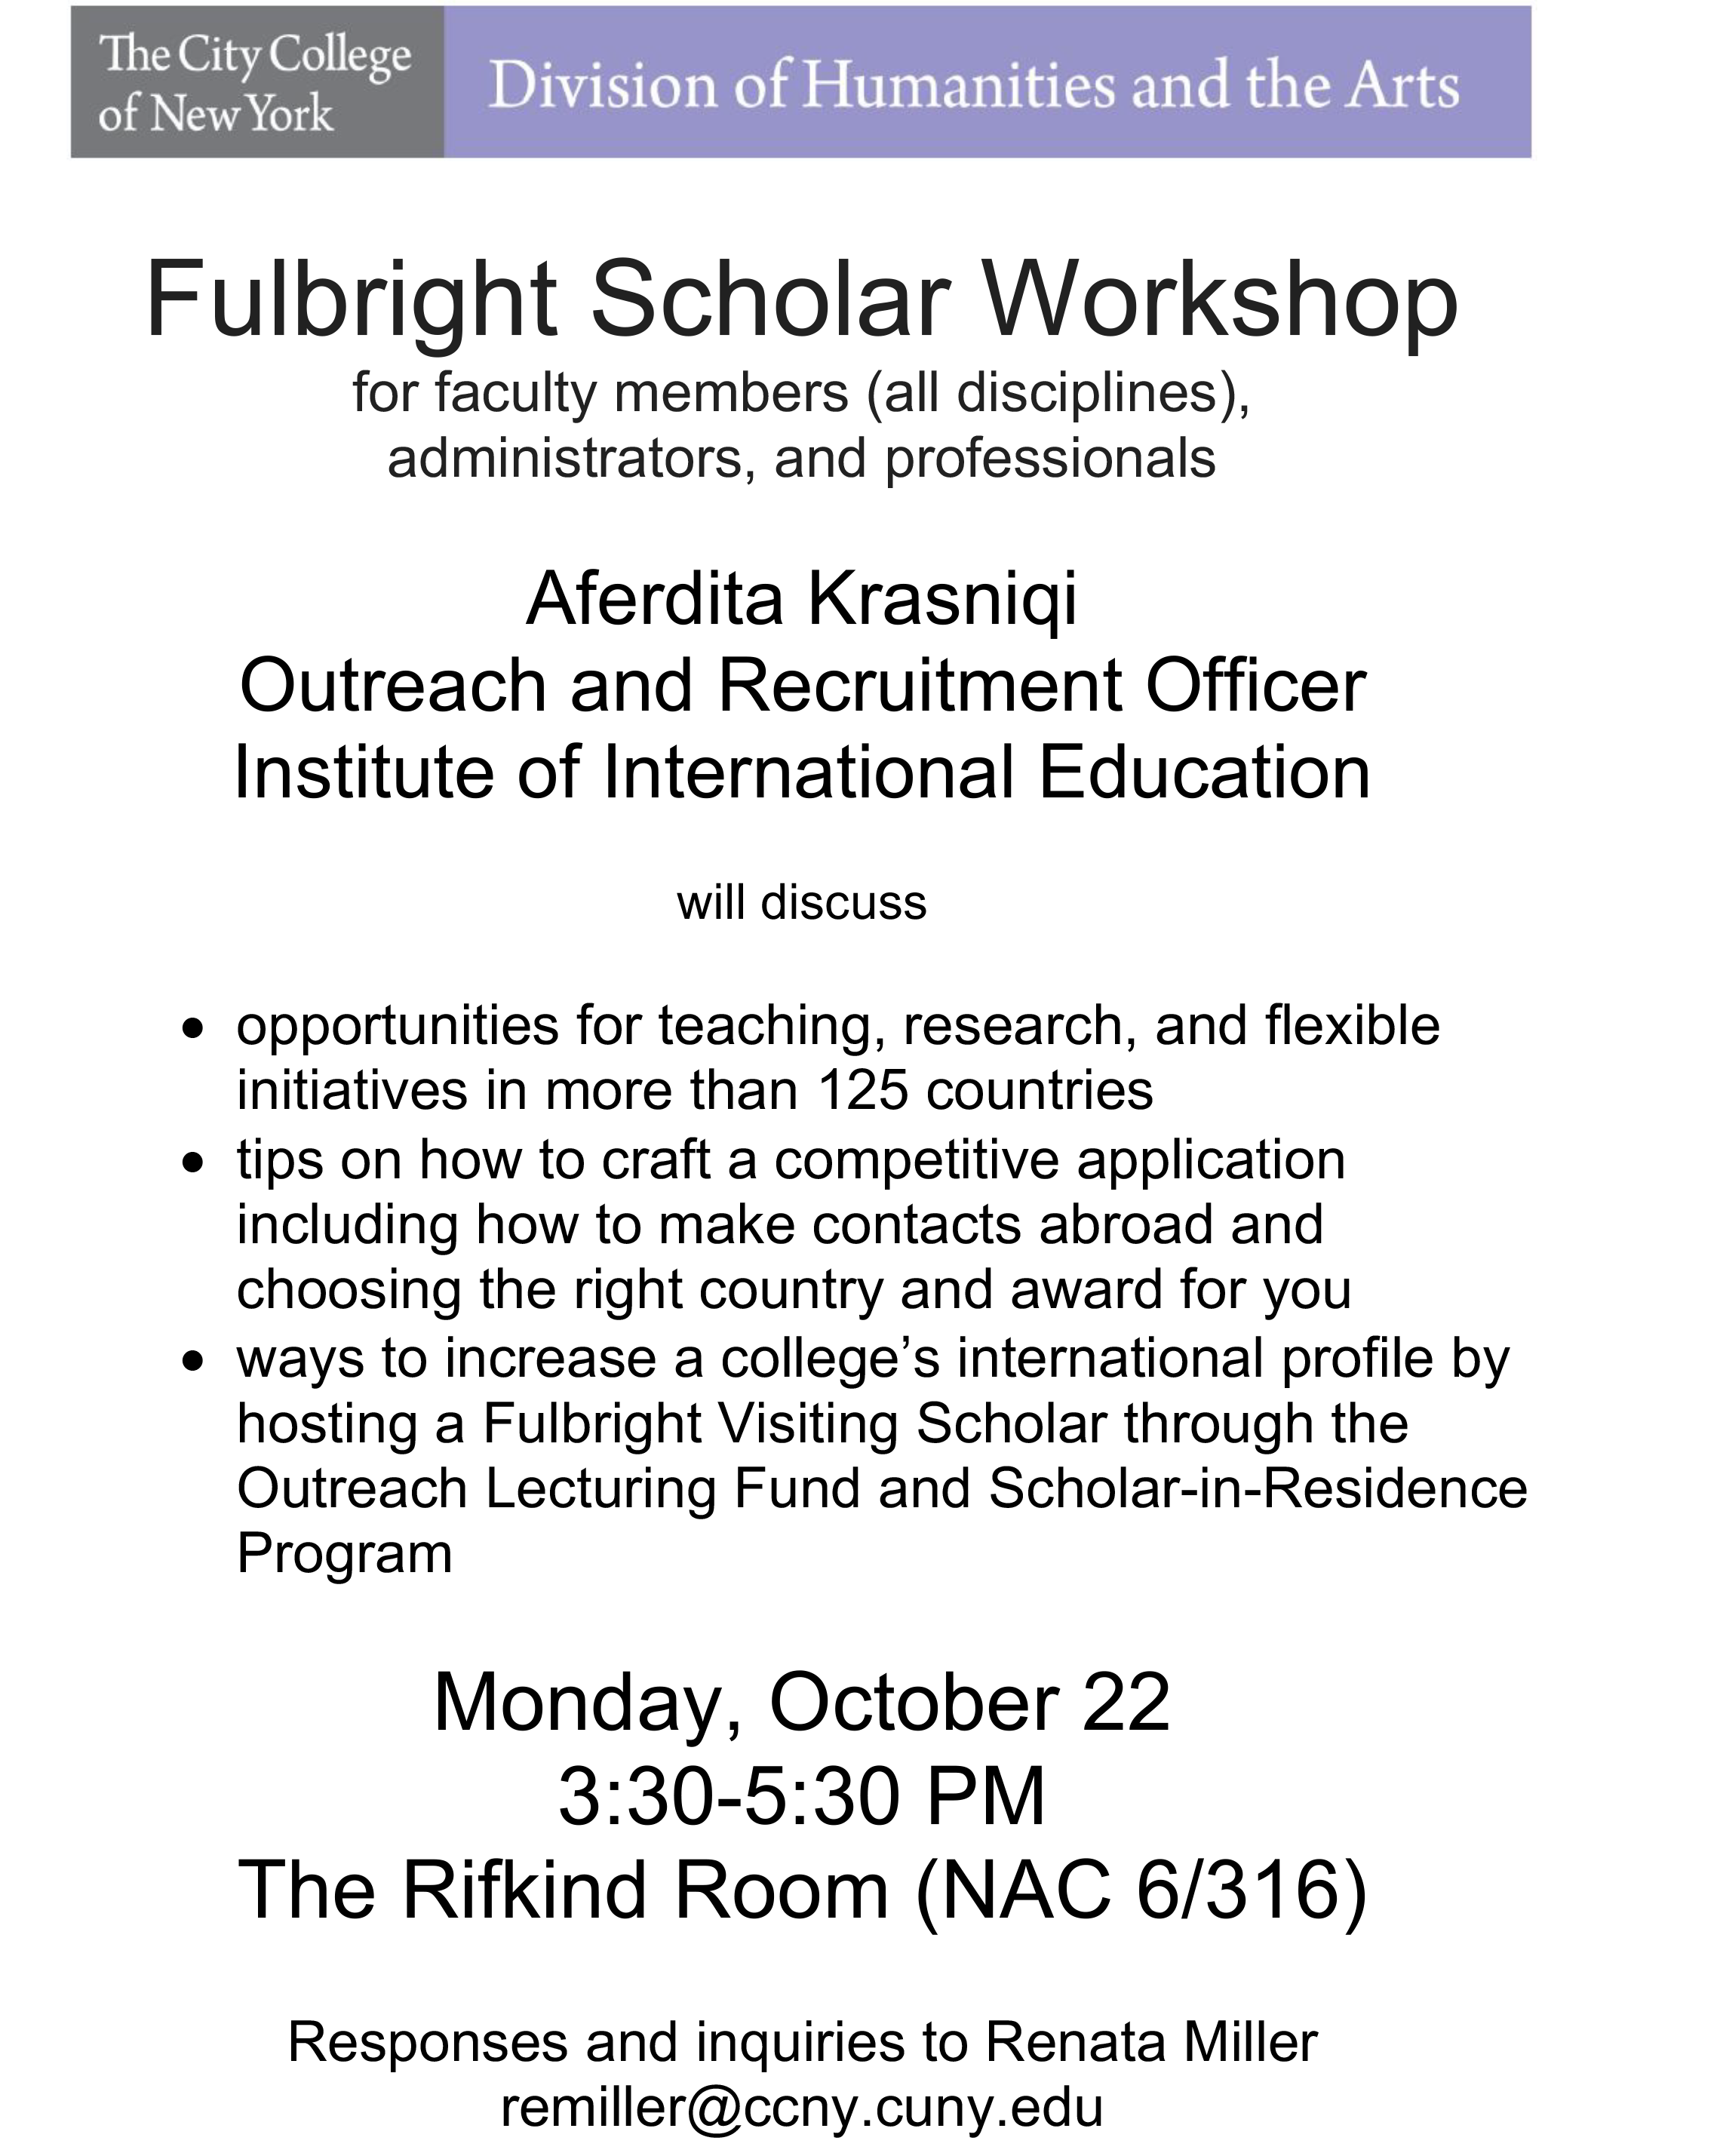 Fulbright Scholar Workshop for faculty members (all disciplines),  administrators, and professionals